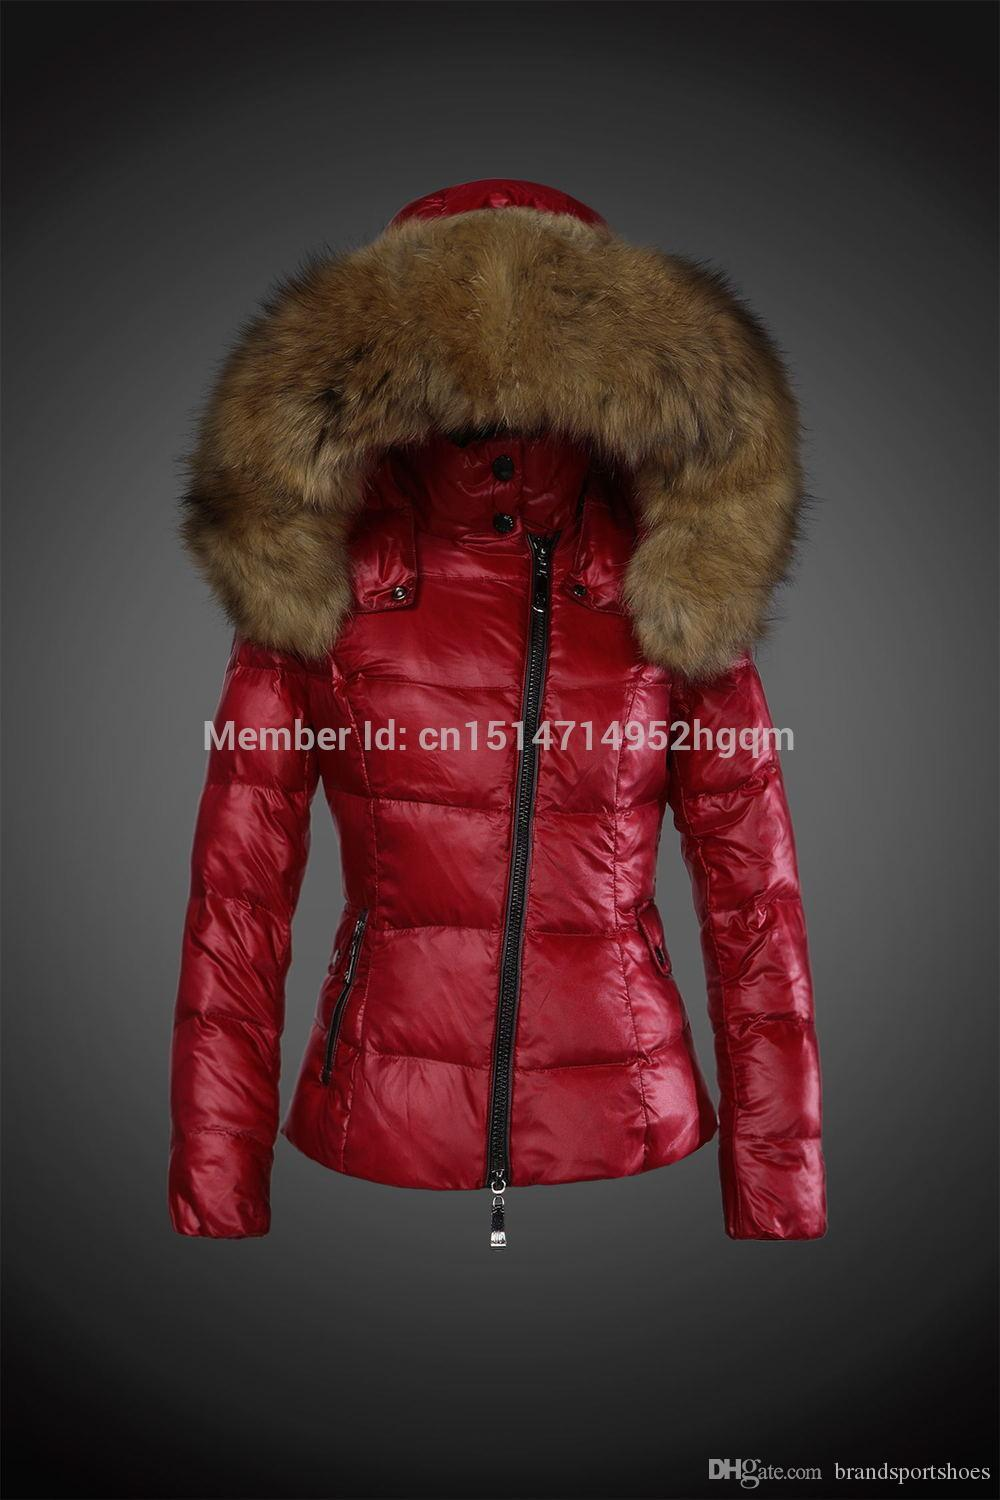 Wholesale Women's Down & Parkas At $285.43, Get Red Purple Green ...